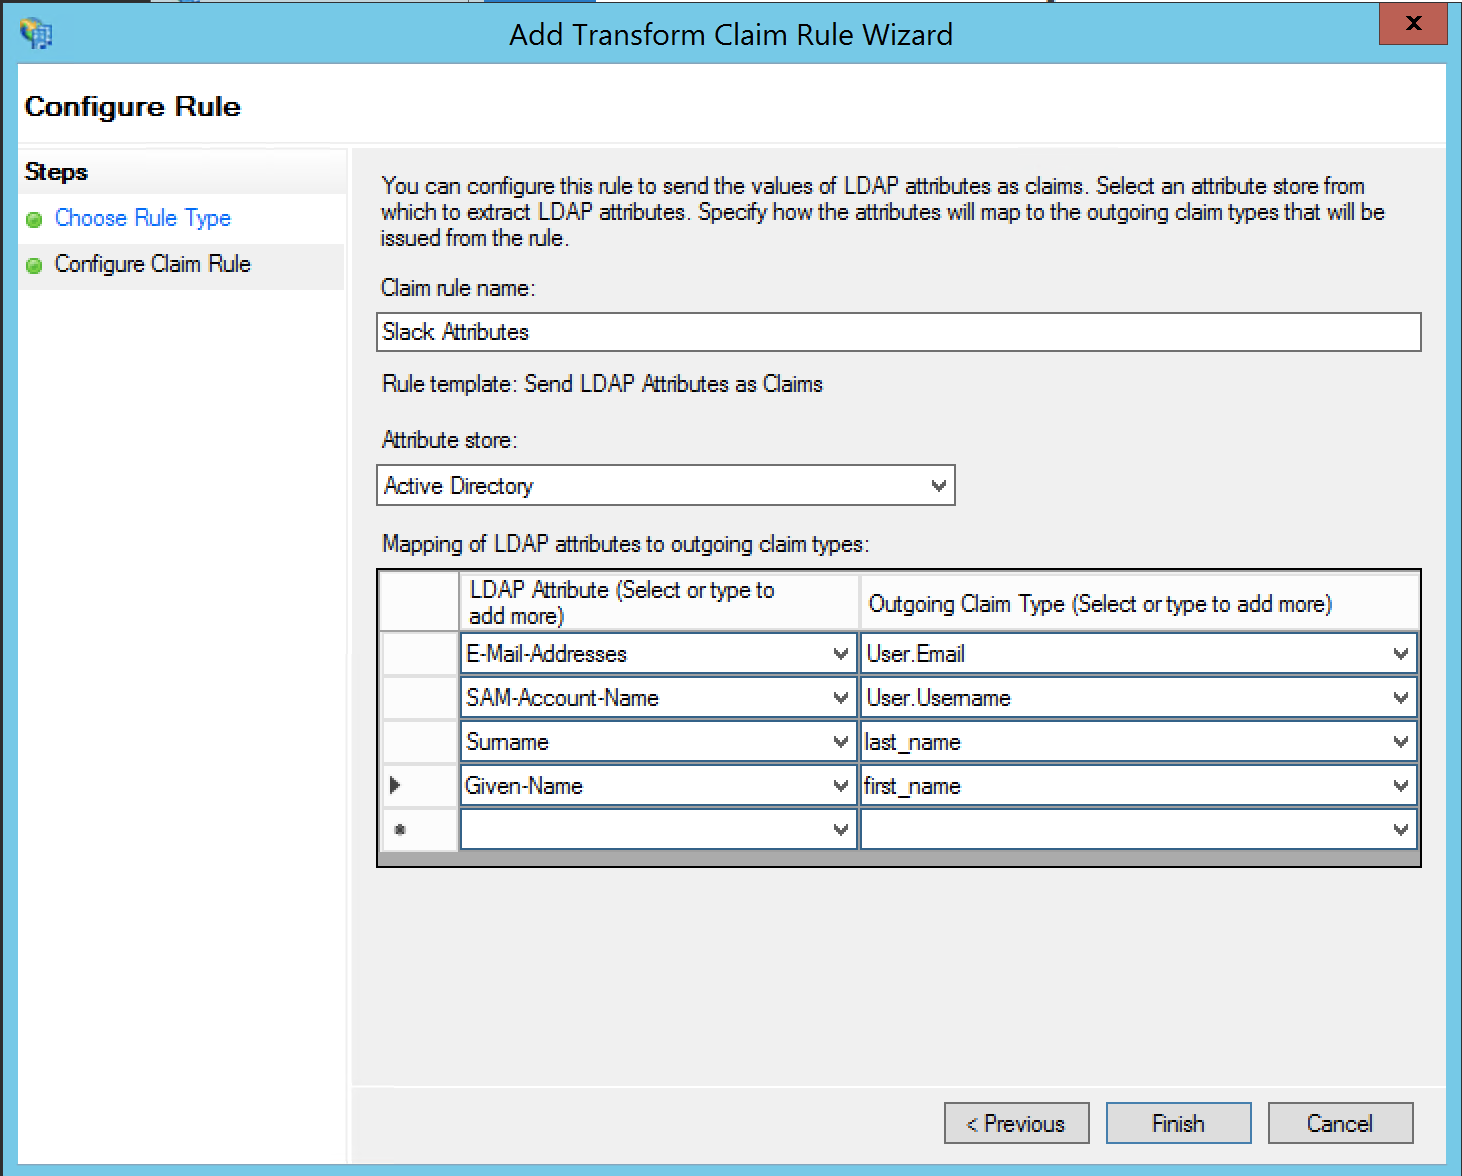 'Configure claim rule' step, showing a list of LDAP attributes and outgoing claim types